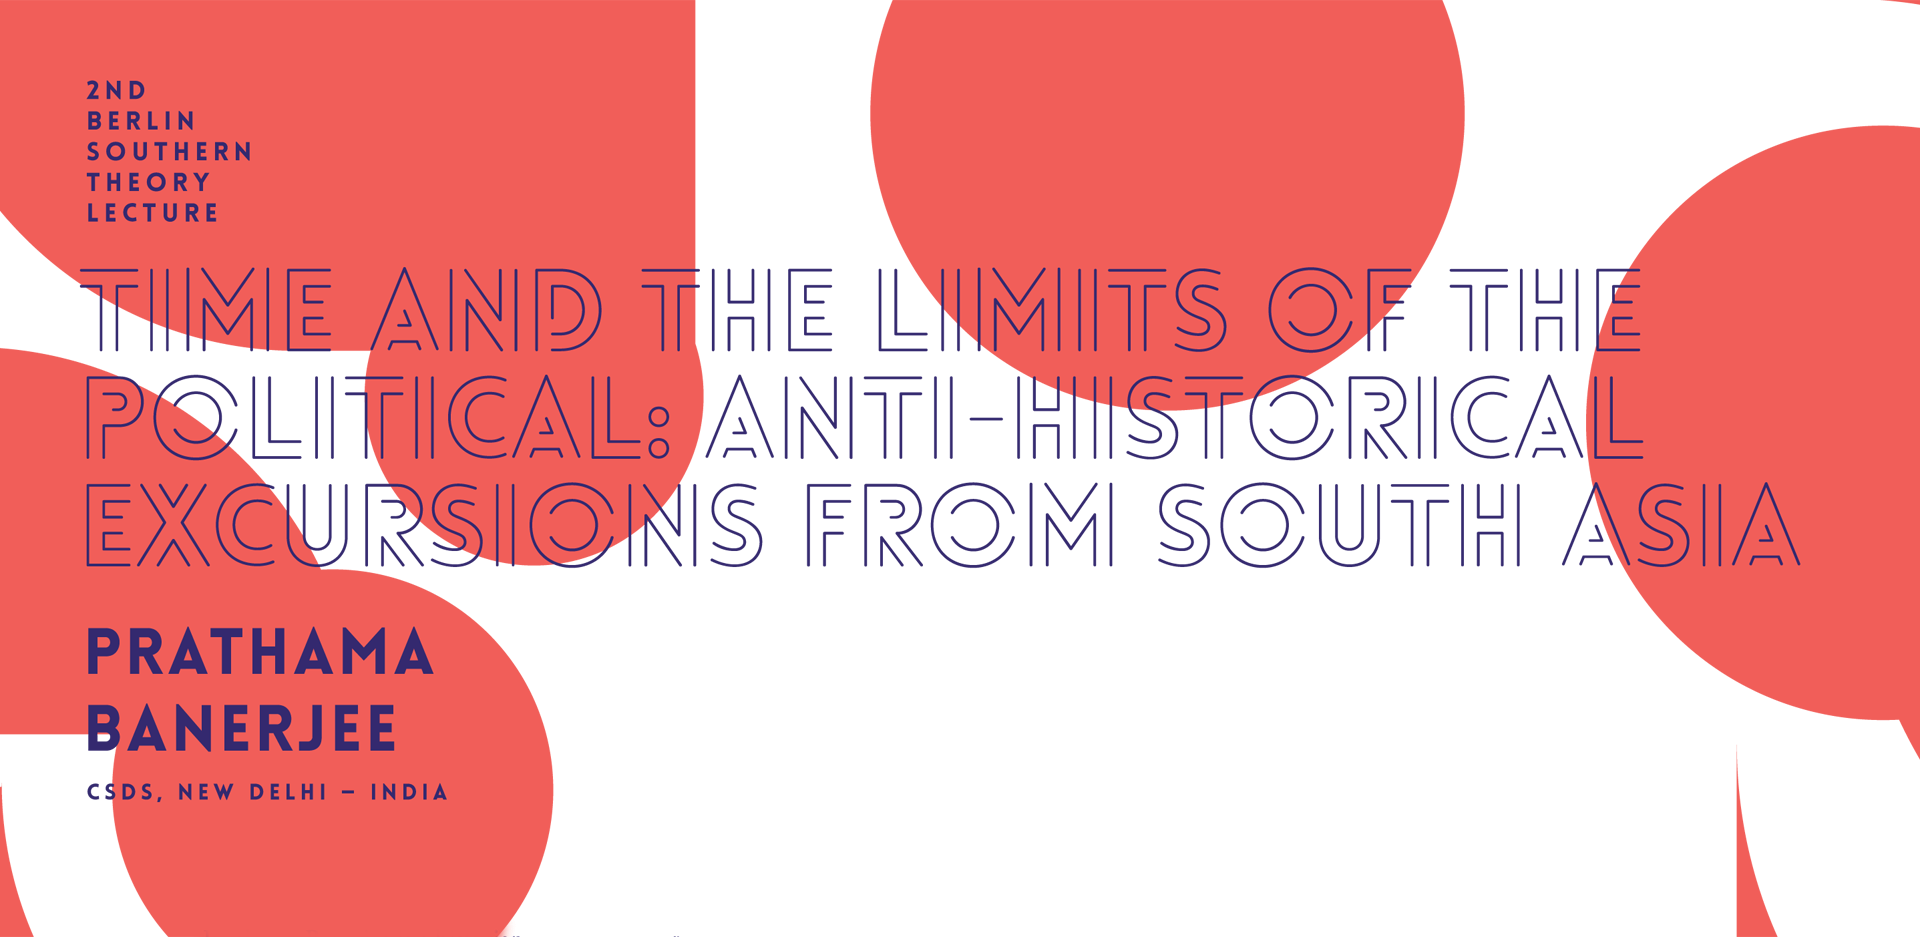 """Poster for the lecture """"Time and the Limits of the Political: Anti-Historical Excursions from South Asia"""" by Prathama Banerjee"""